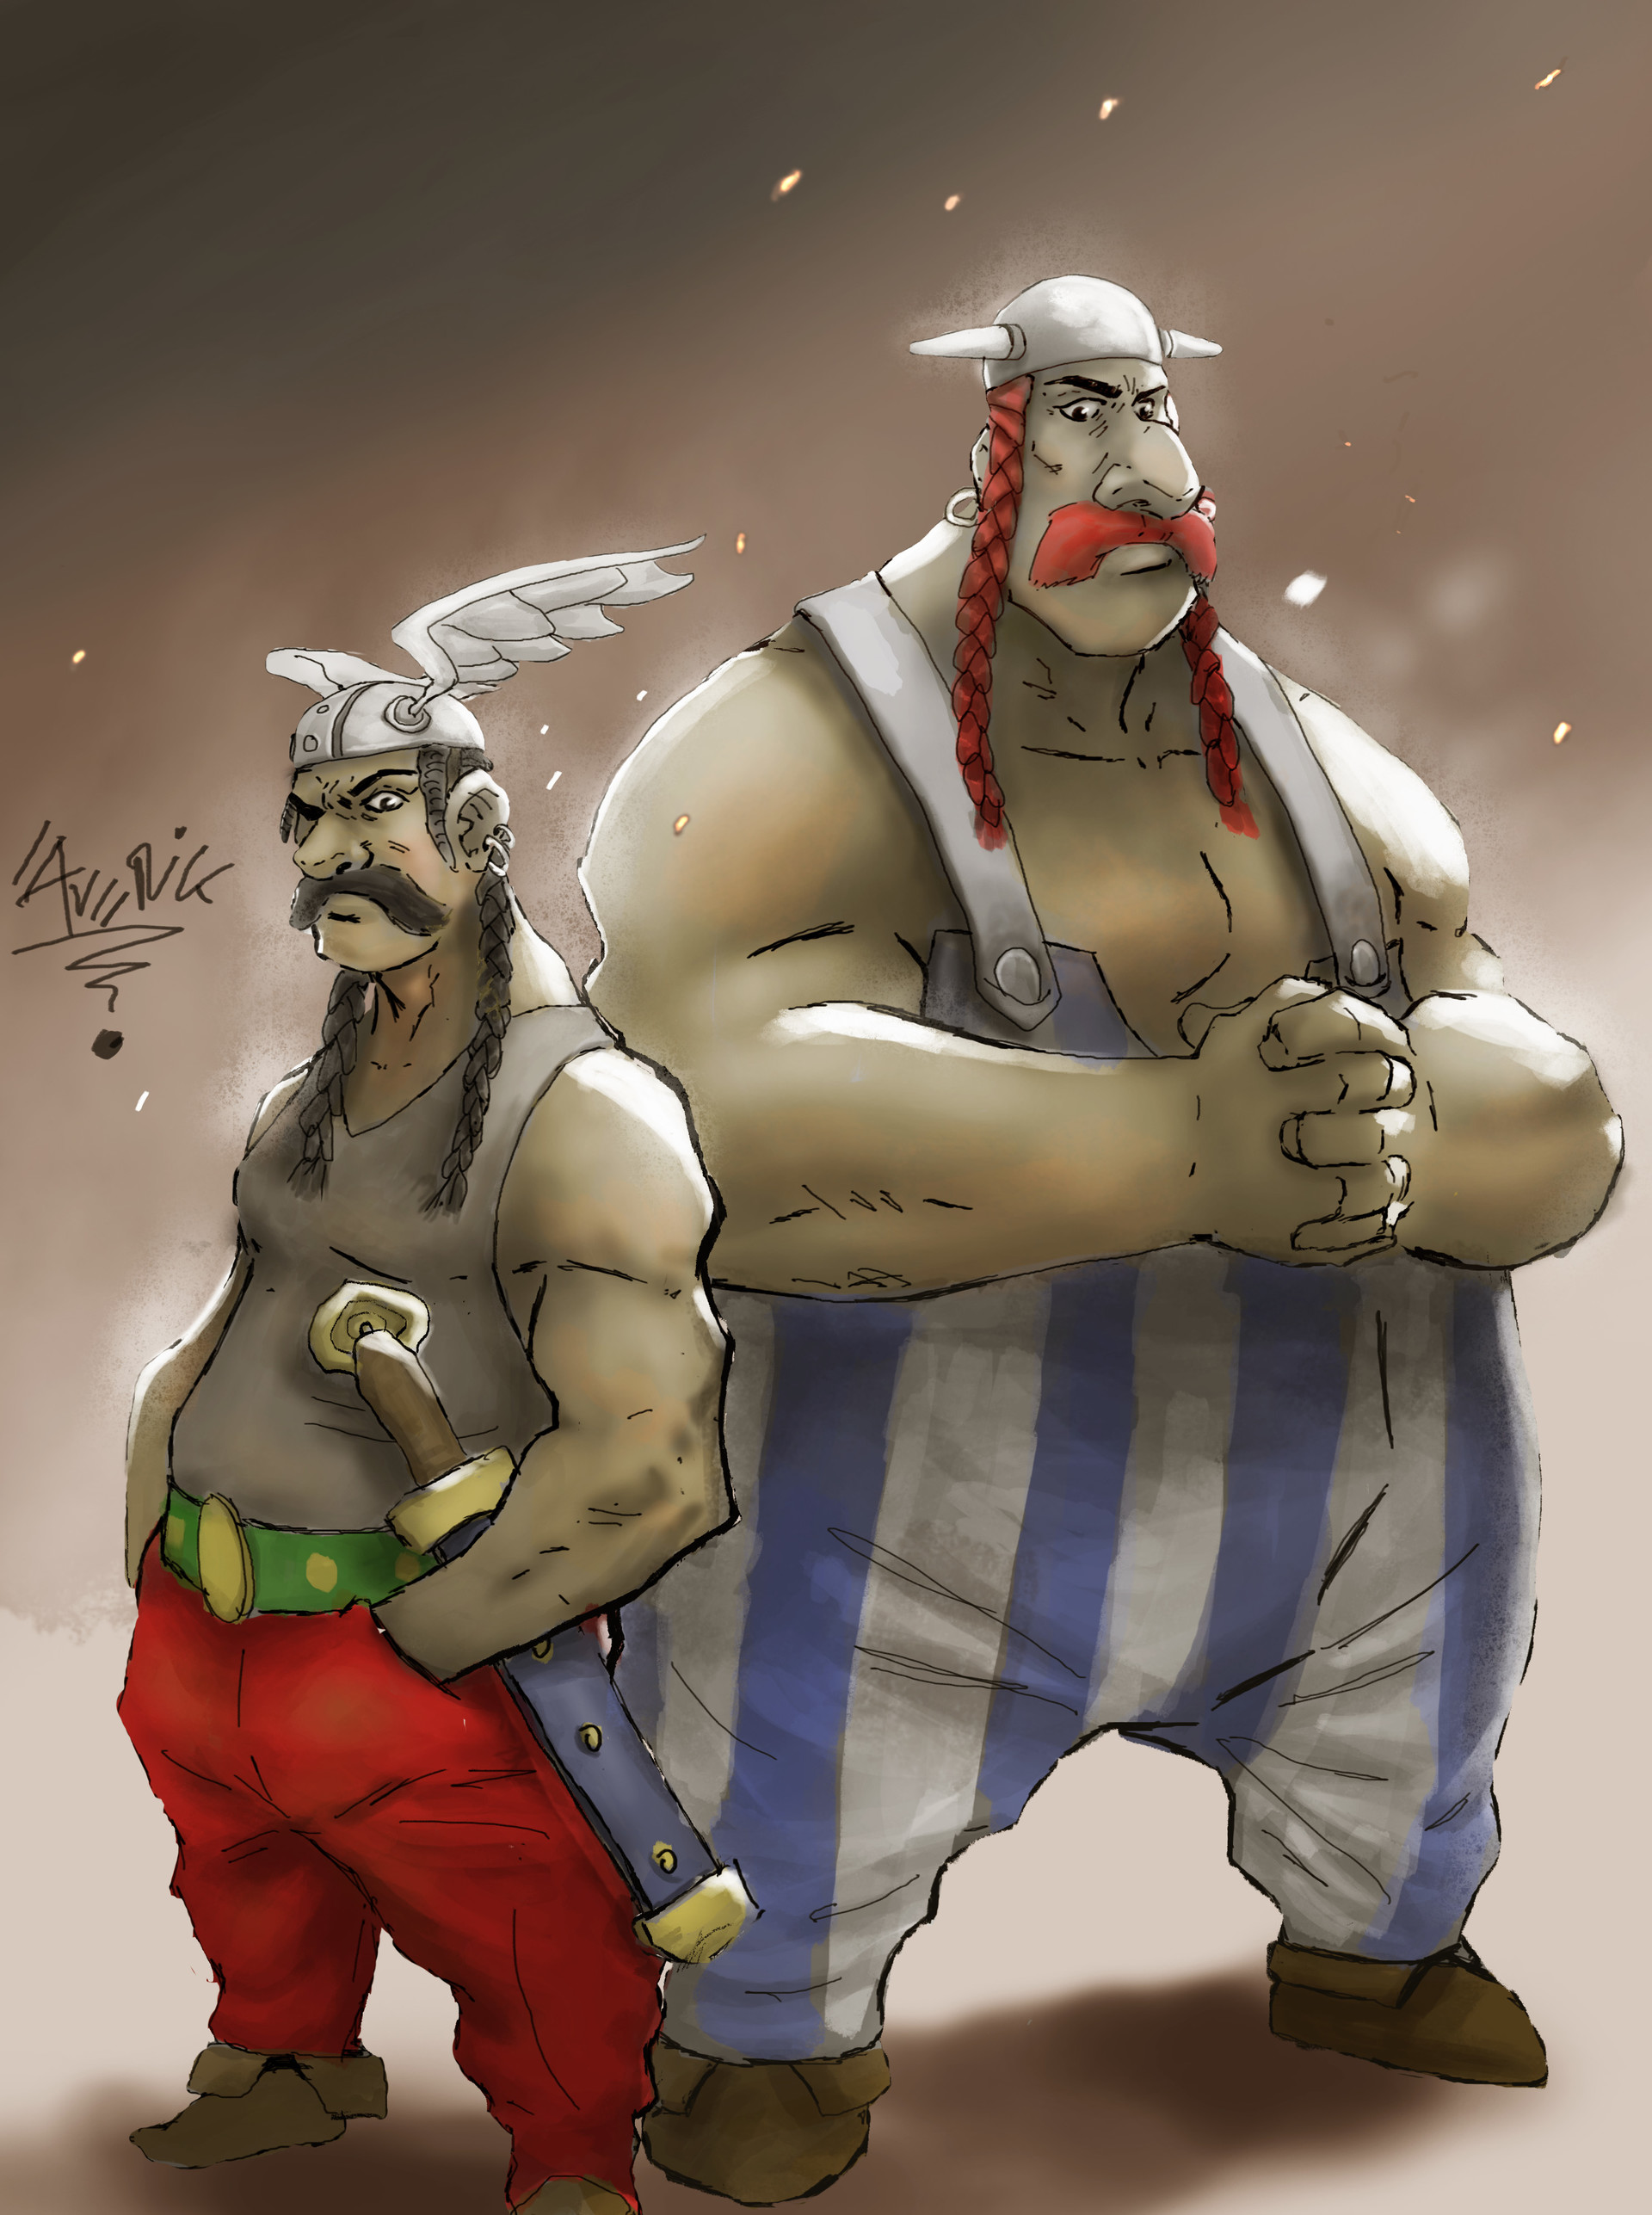 Gbenle maverick asterix and obelix